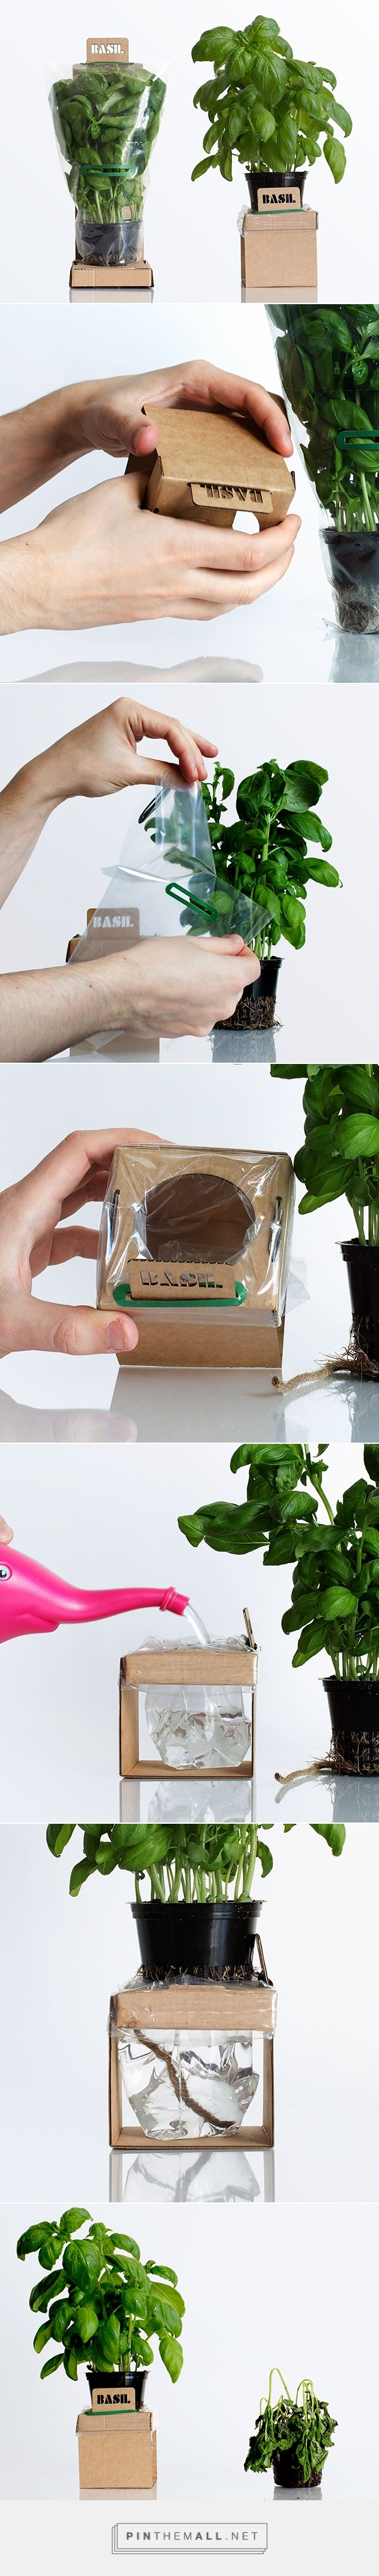 Self-Watering Herbs by Duncan Anderson. Source: Packaging Design Served PD